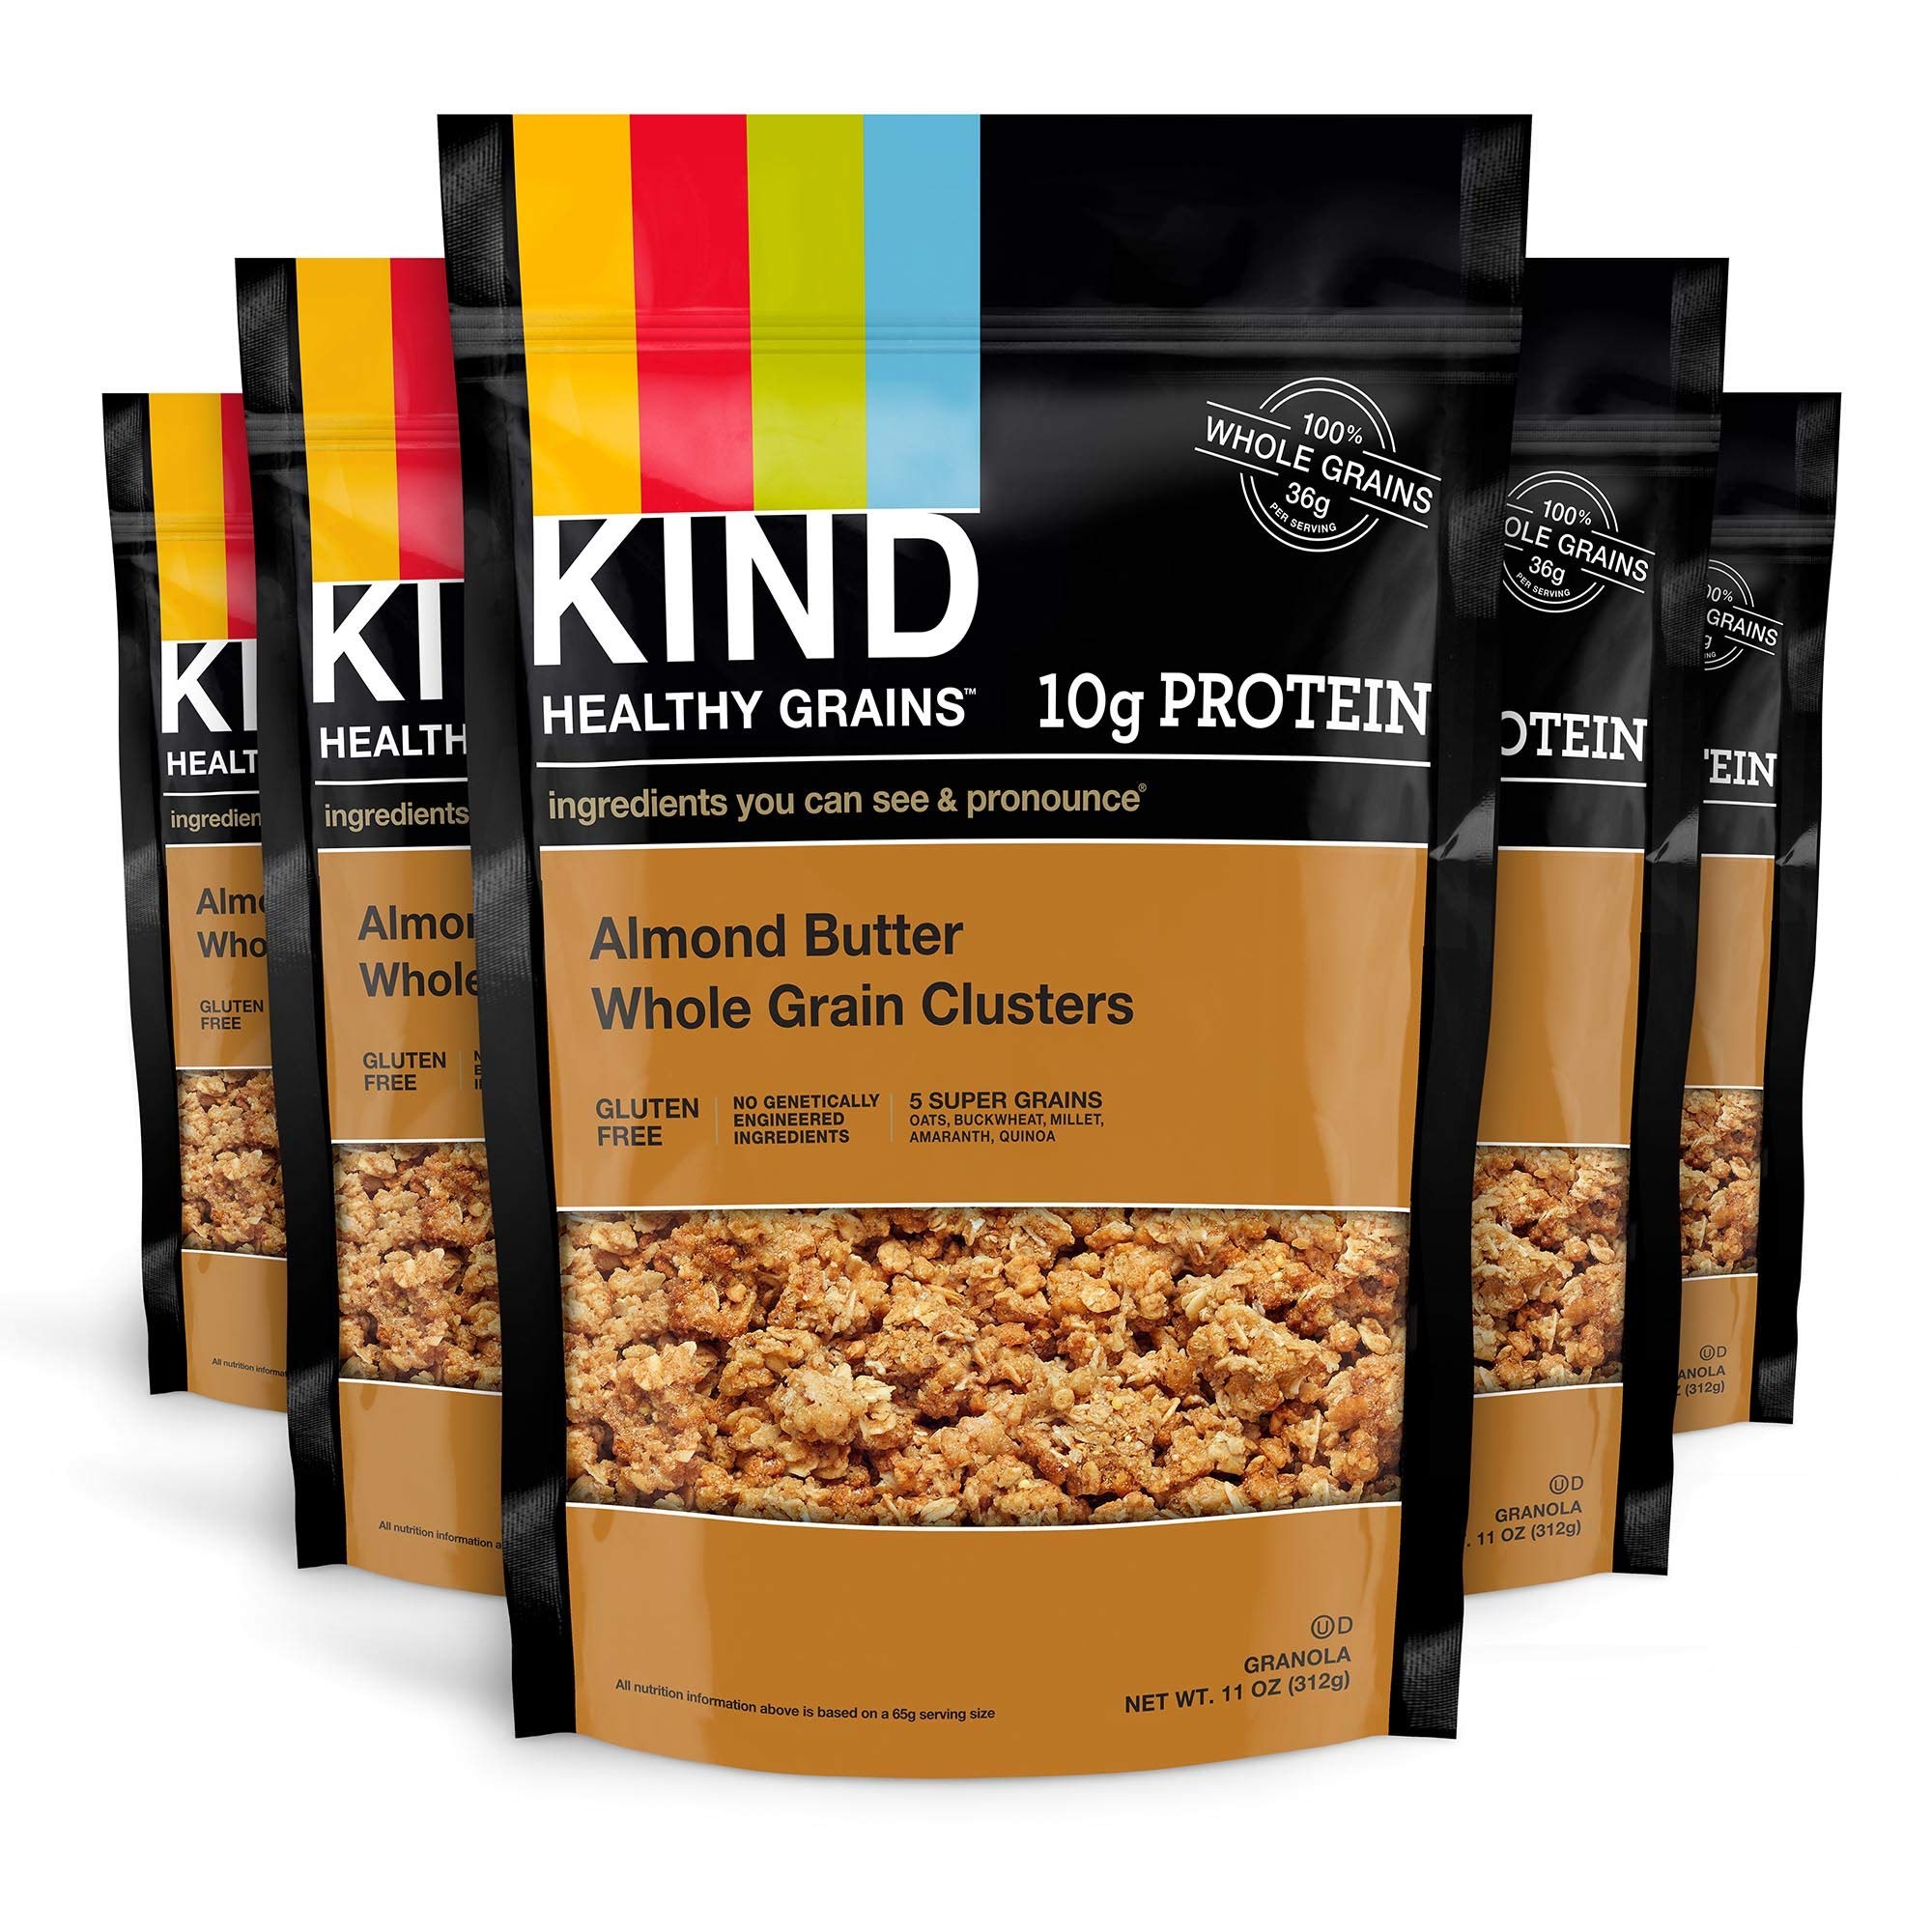 KIND Healthy Grains Clusters, Almond Butter Granola, 10g Protein, Gluten Free, 11 Ounce Bags, 6 Count by KIND